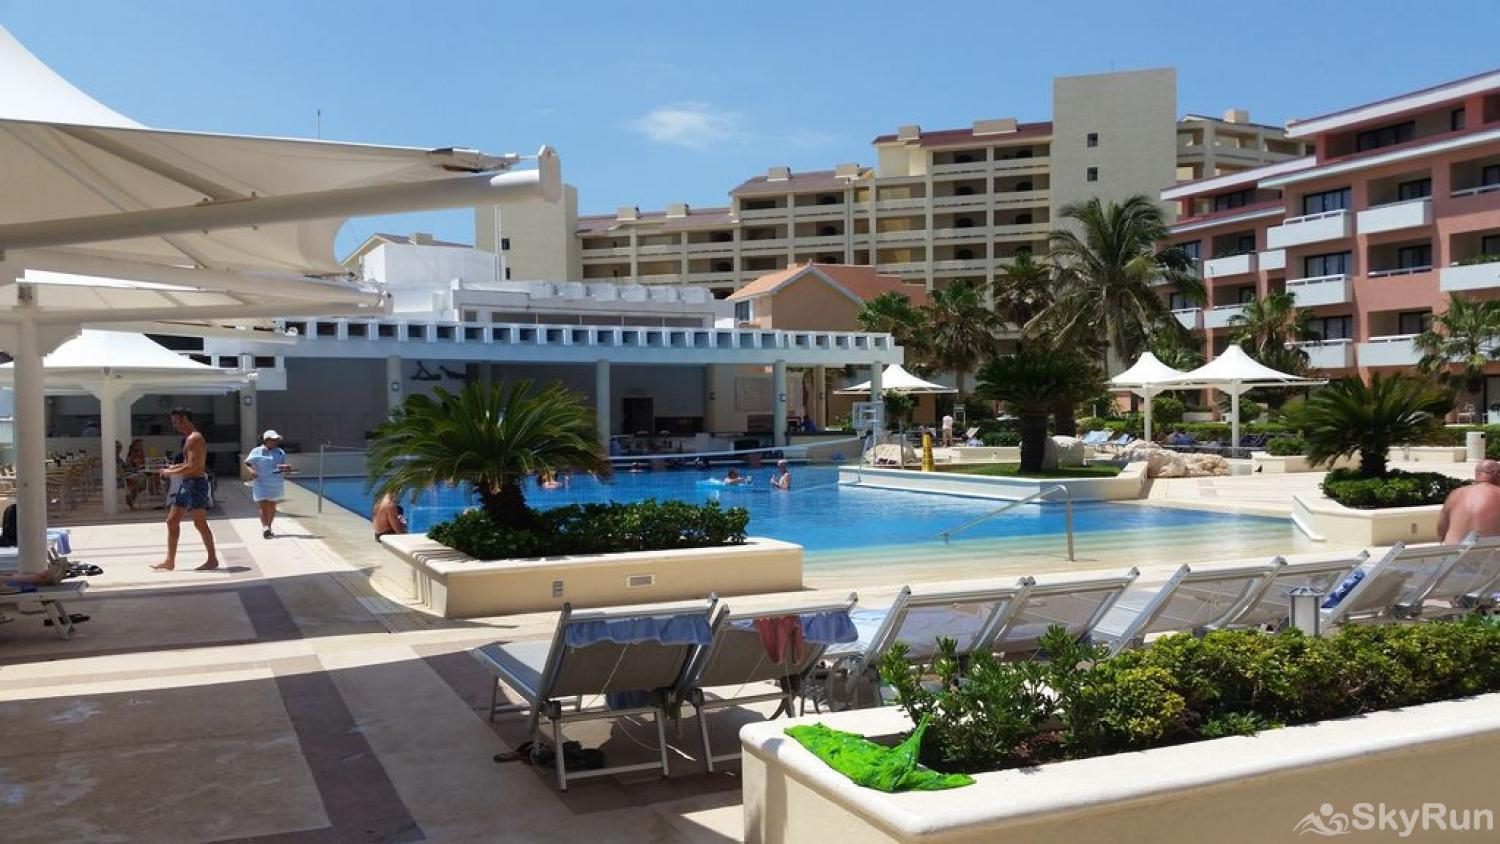 New Hotel Room Cancun Beachfront besides Private Villa , at Omni Resort Kinich Villa 33 Main Pool and Facilities